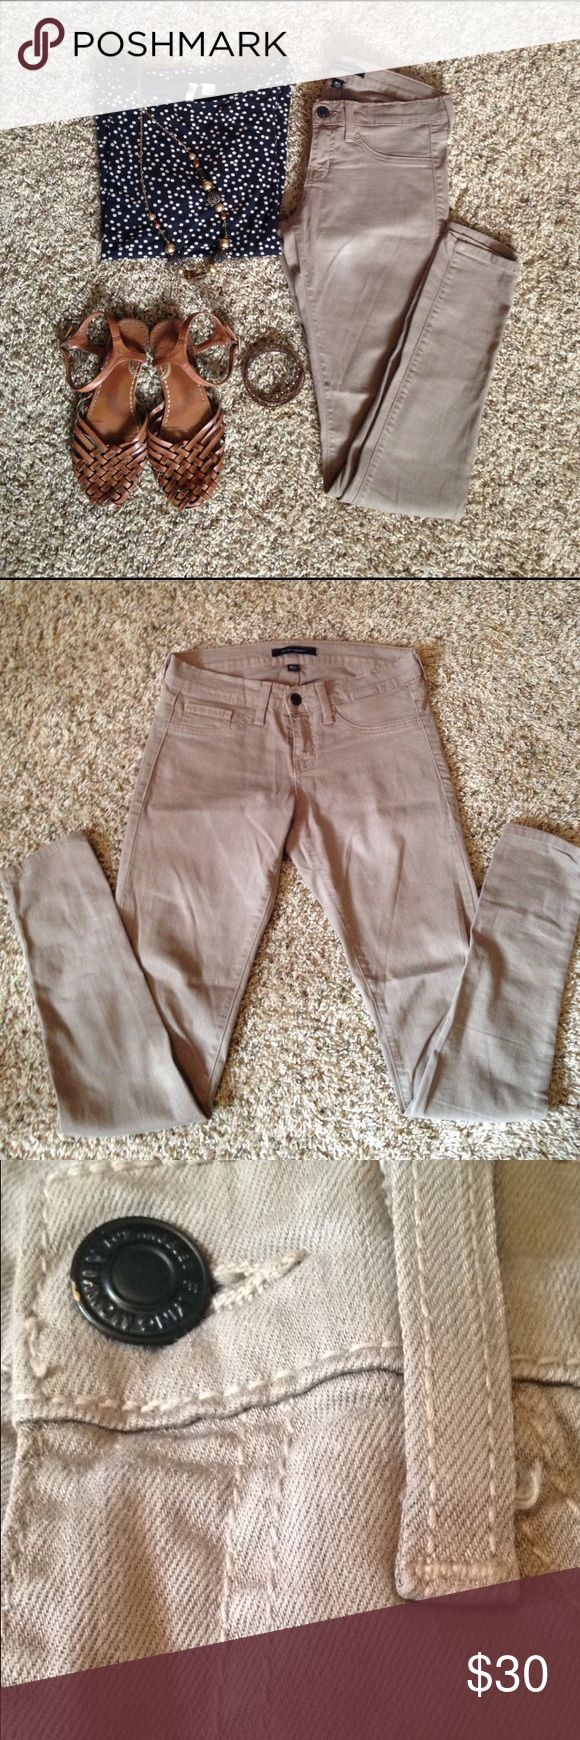 Flying Monkey Tan Skinny Jeans Skinny jeans from Buckle. EUC. Smoke/ pet free home. Make an offer Flying Monkey Pants Skinny